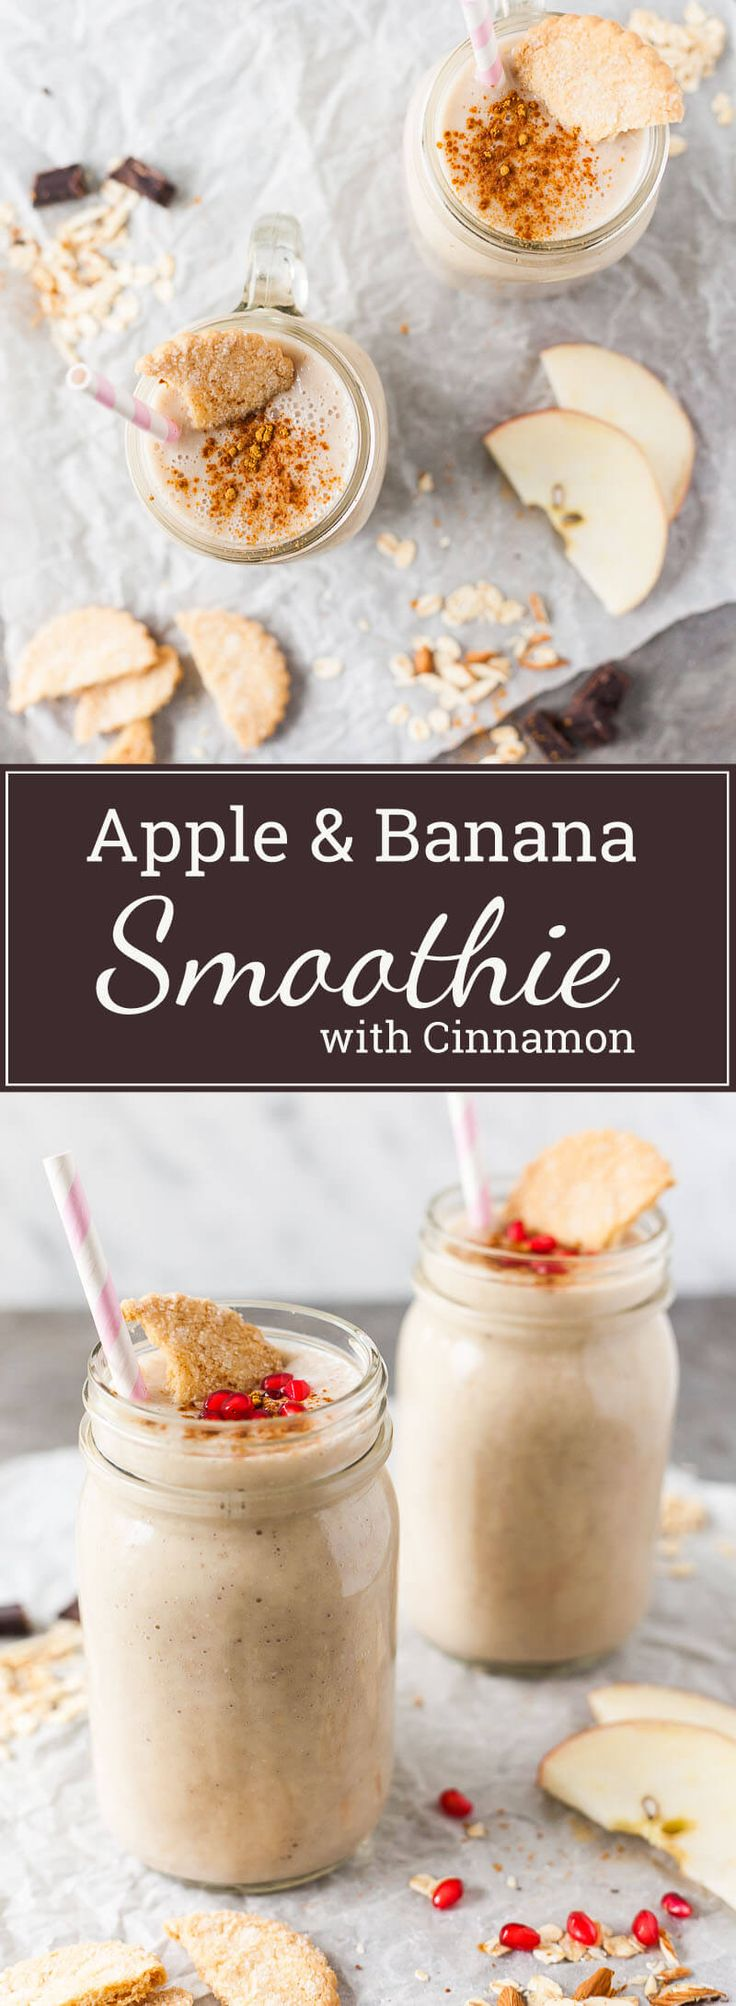 This simple Apple Banana Smoothie is delicious, nutritious and super easy to make. Just place everything in your blender, blend and … done! | www.vibrantplate.com